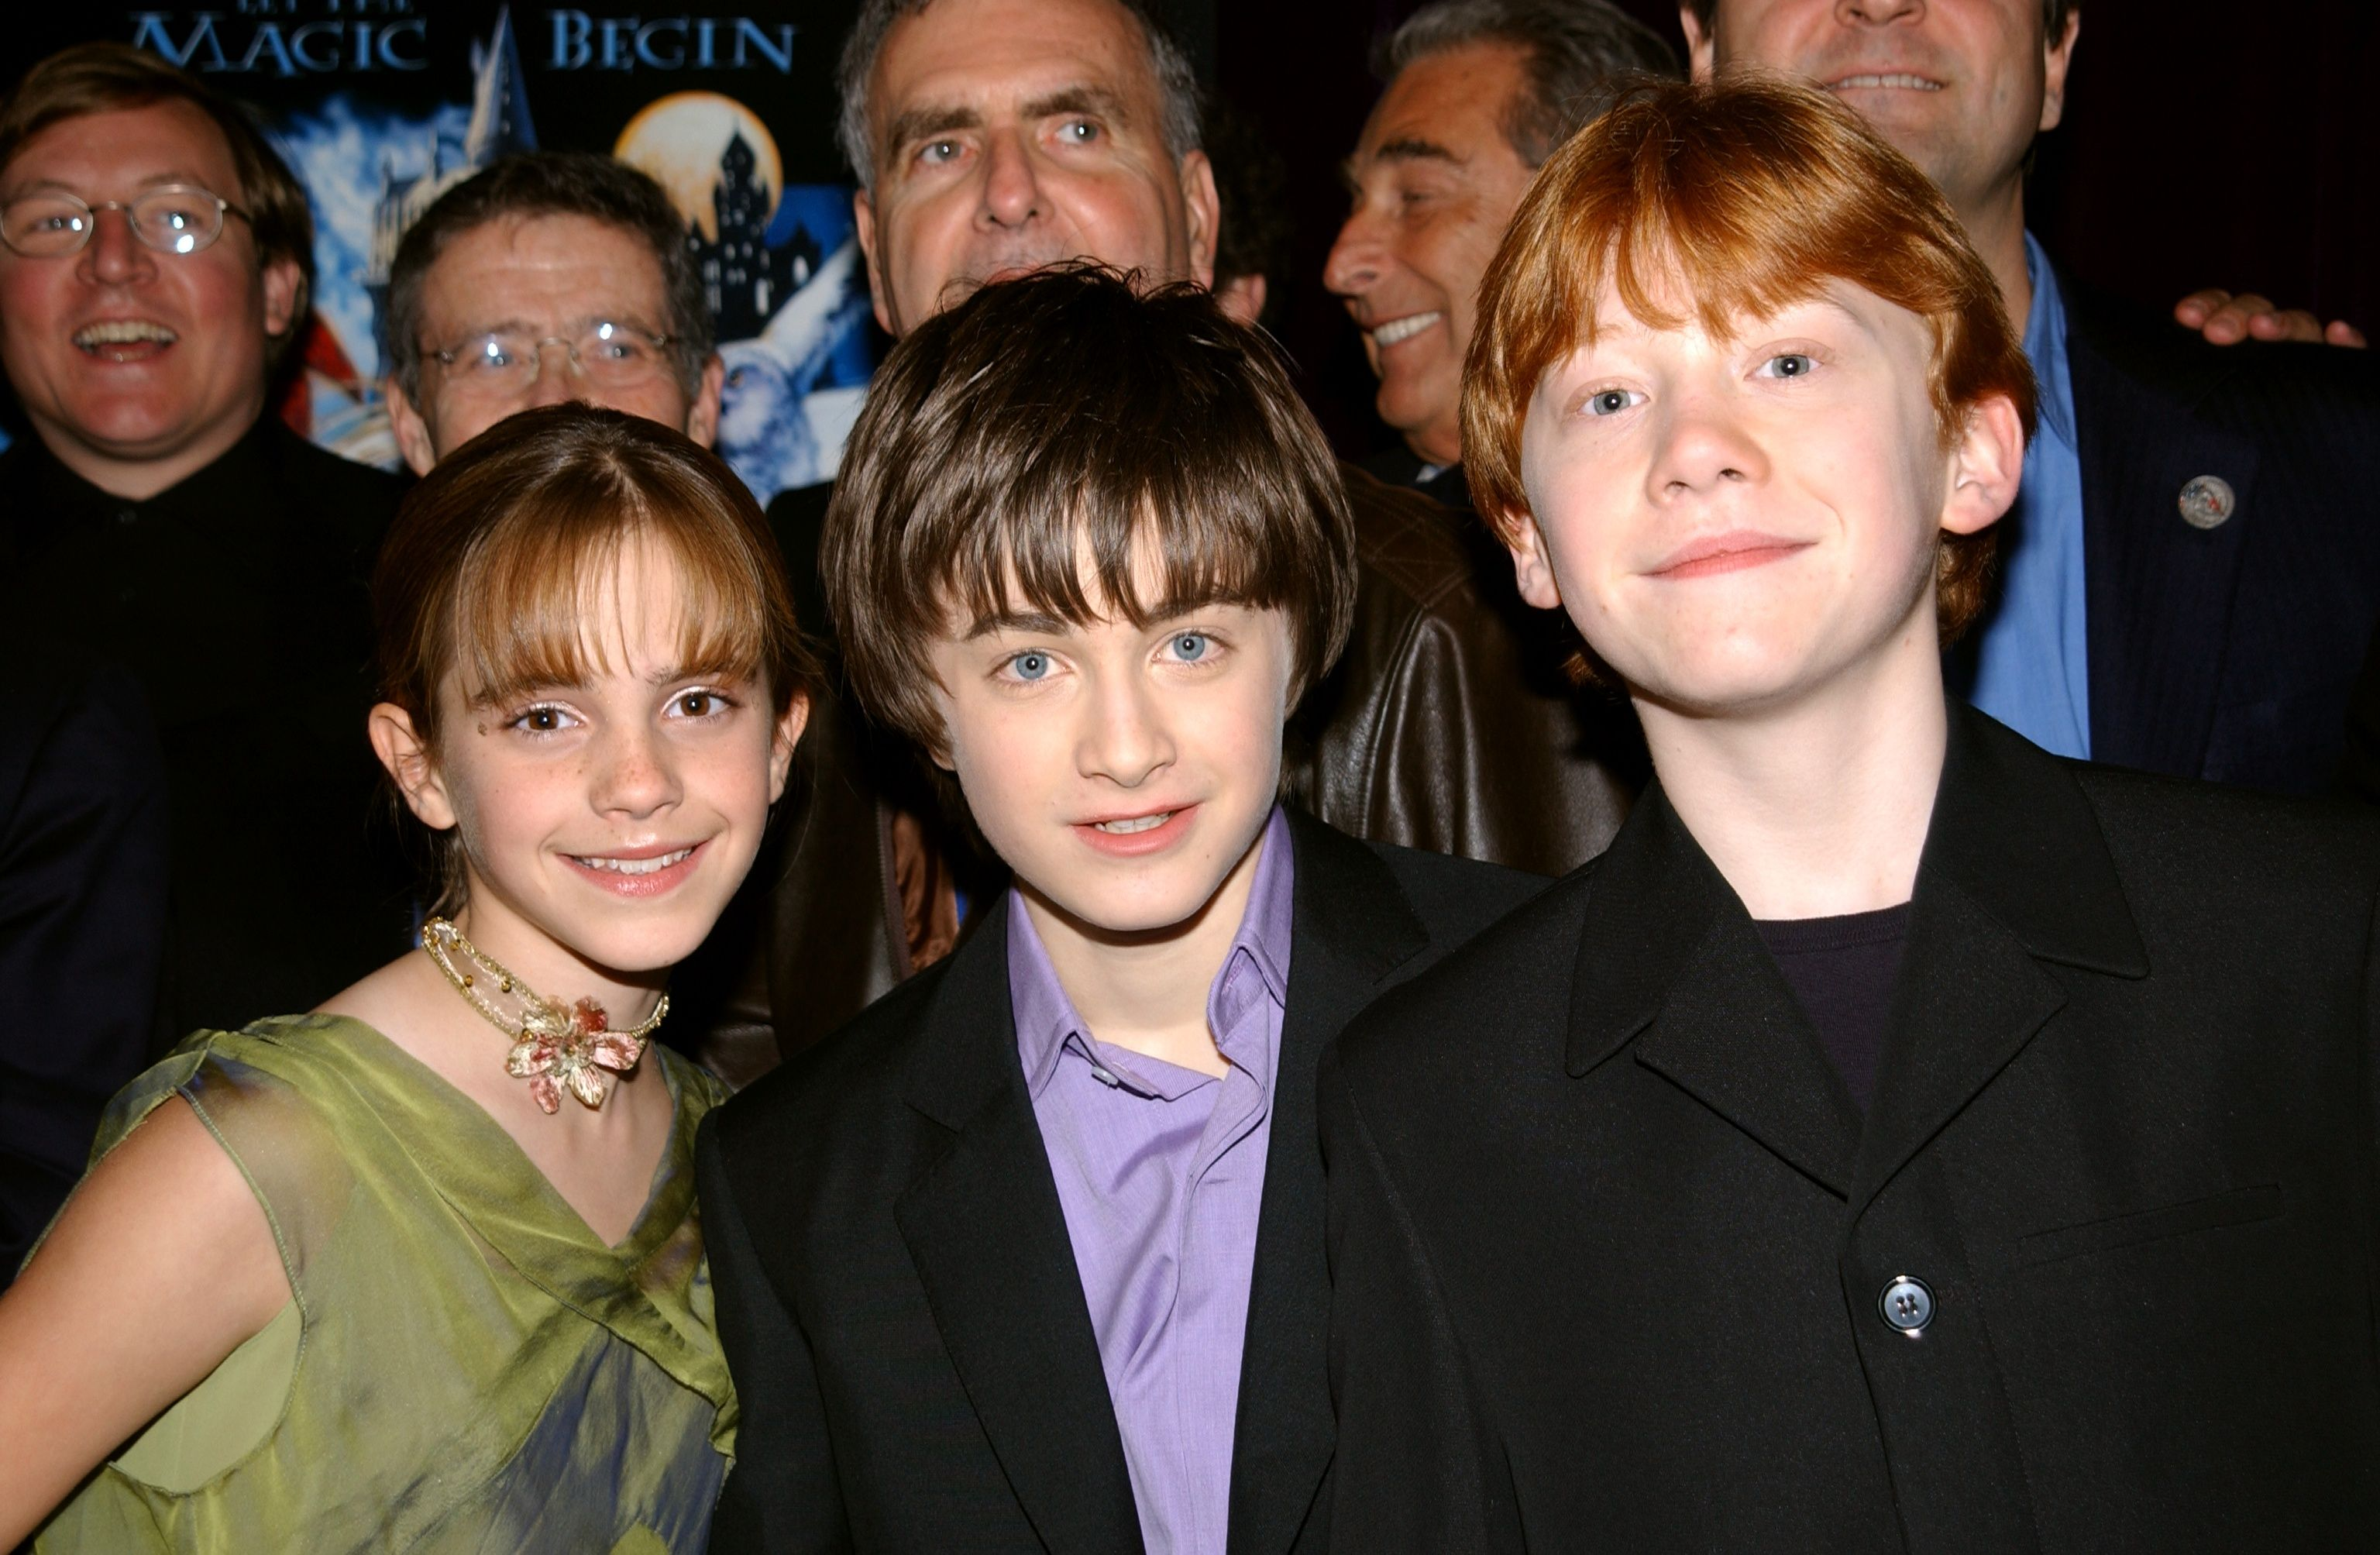 """Emma Watson, Daniel Radcliffe and Rupert Grint at the New York premiere of """"Harry Potter and the Sorcerer's Stone""""  